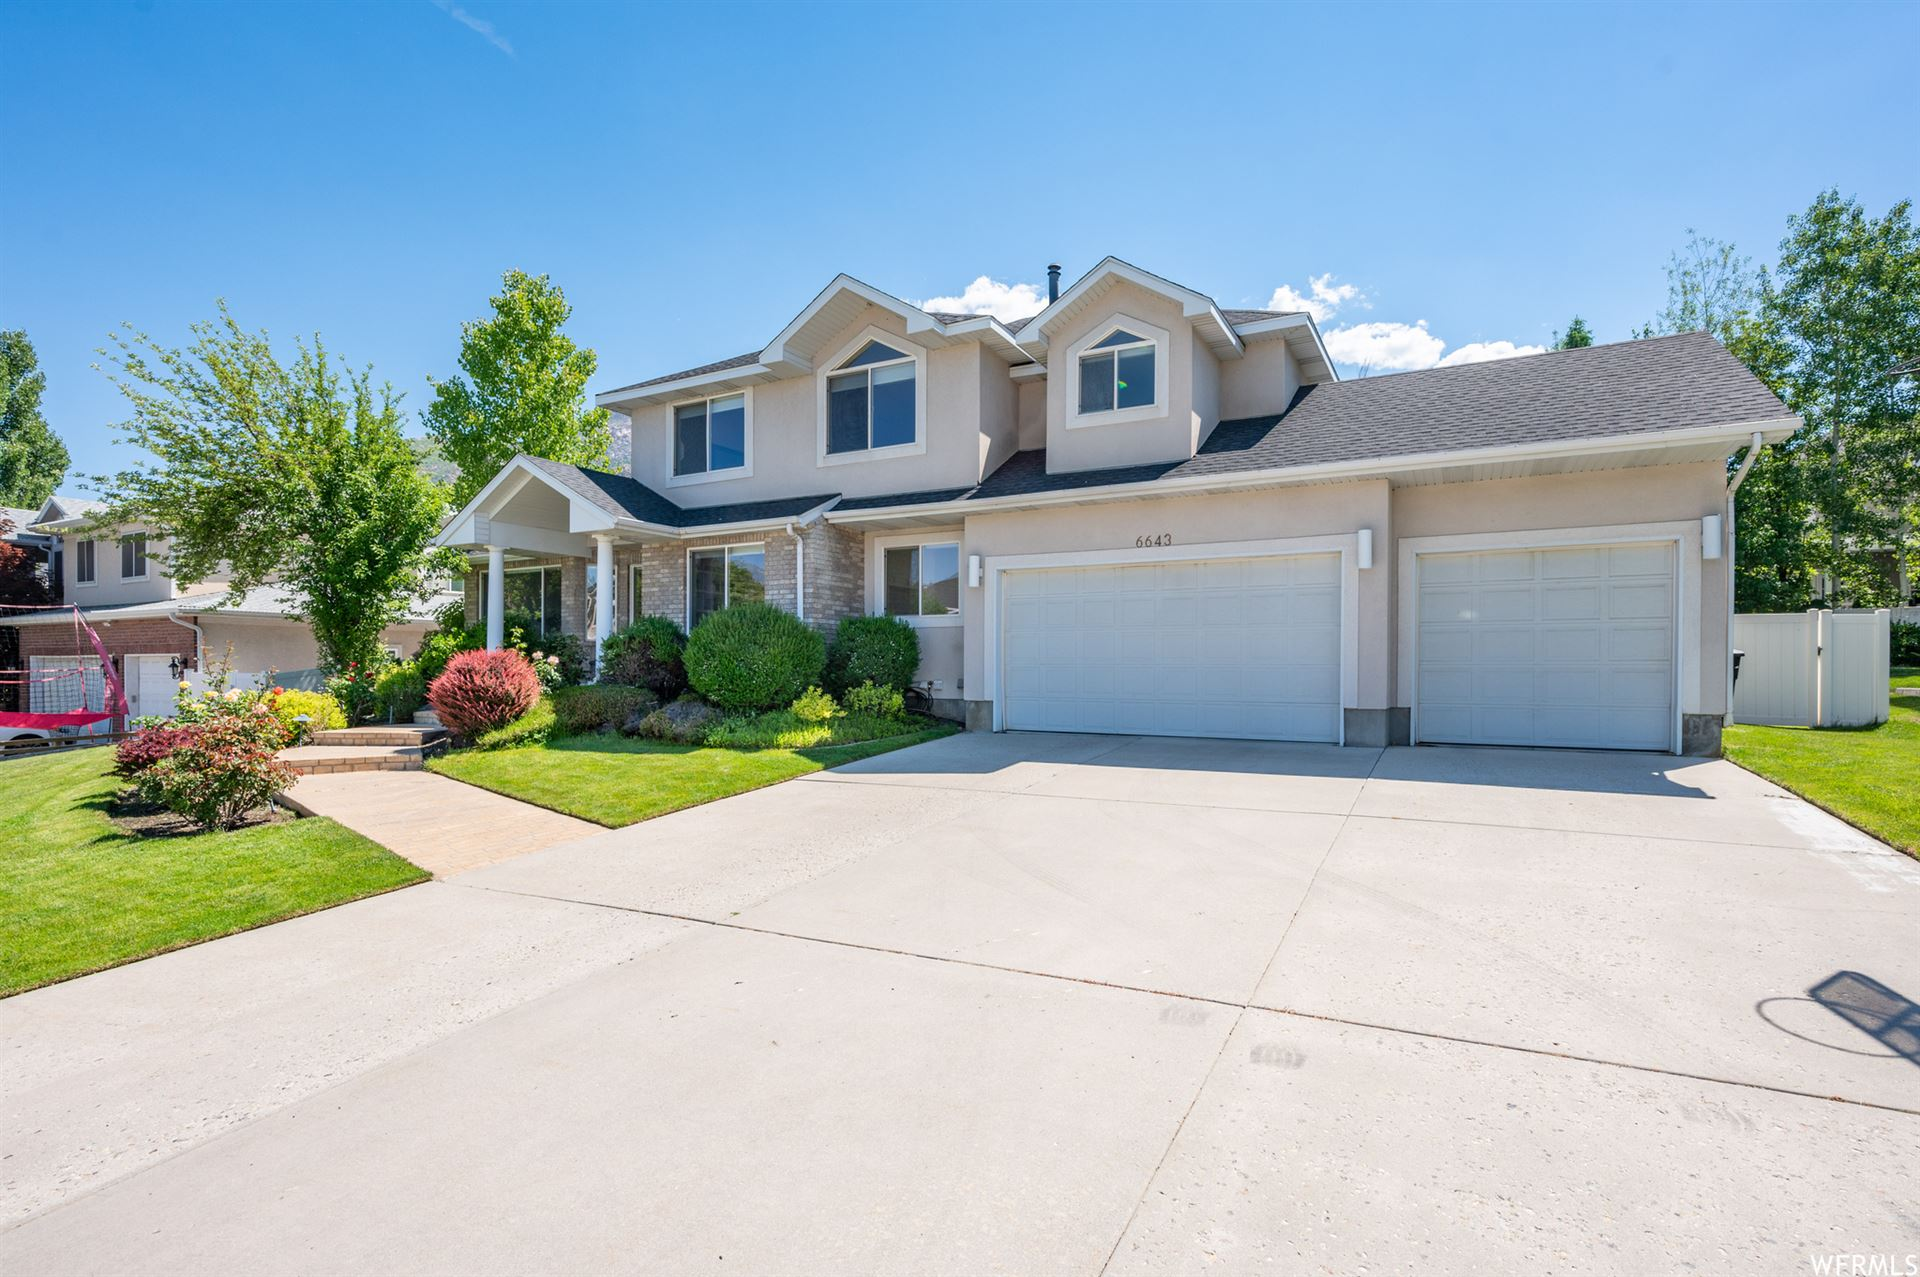 Photo of 6643 S ANNE MARIE DR, Cottonwood Heights, UT 84121 (MLS # 1746681)